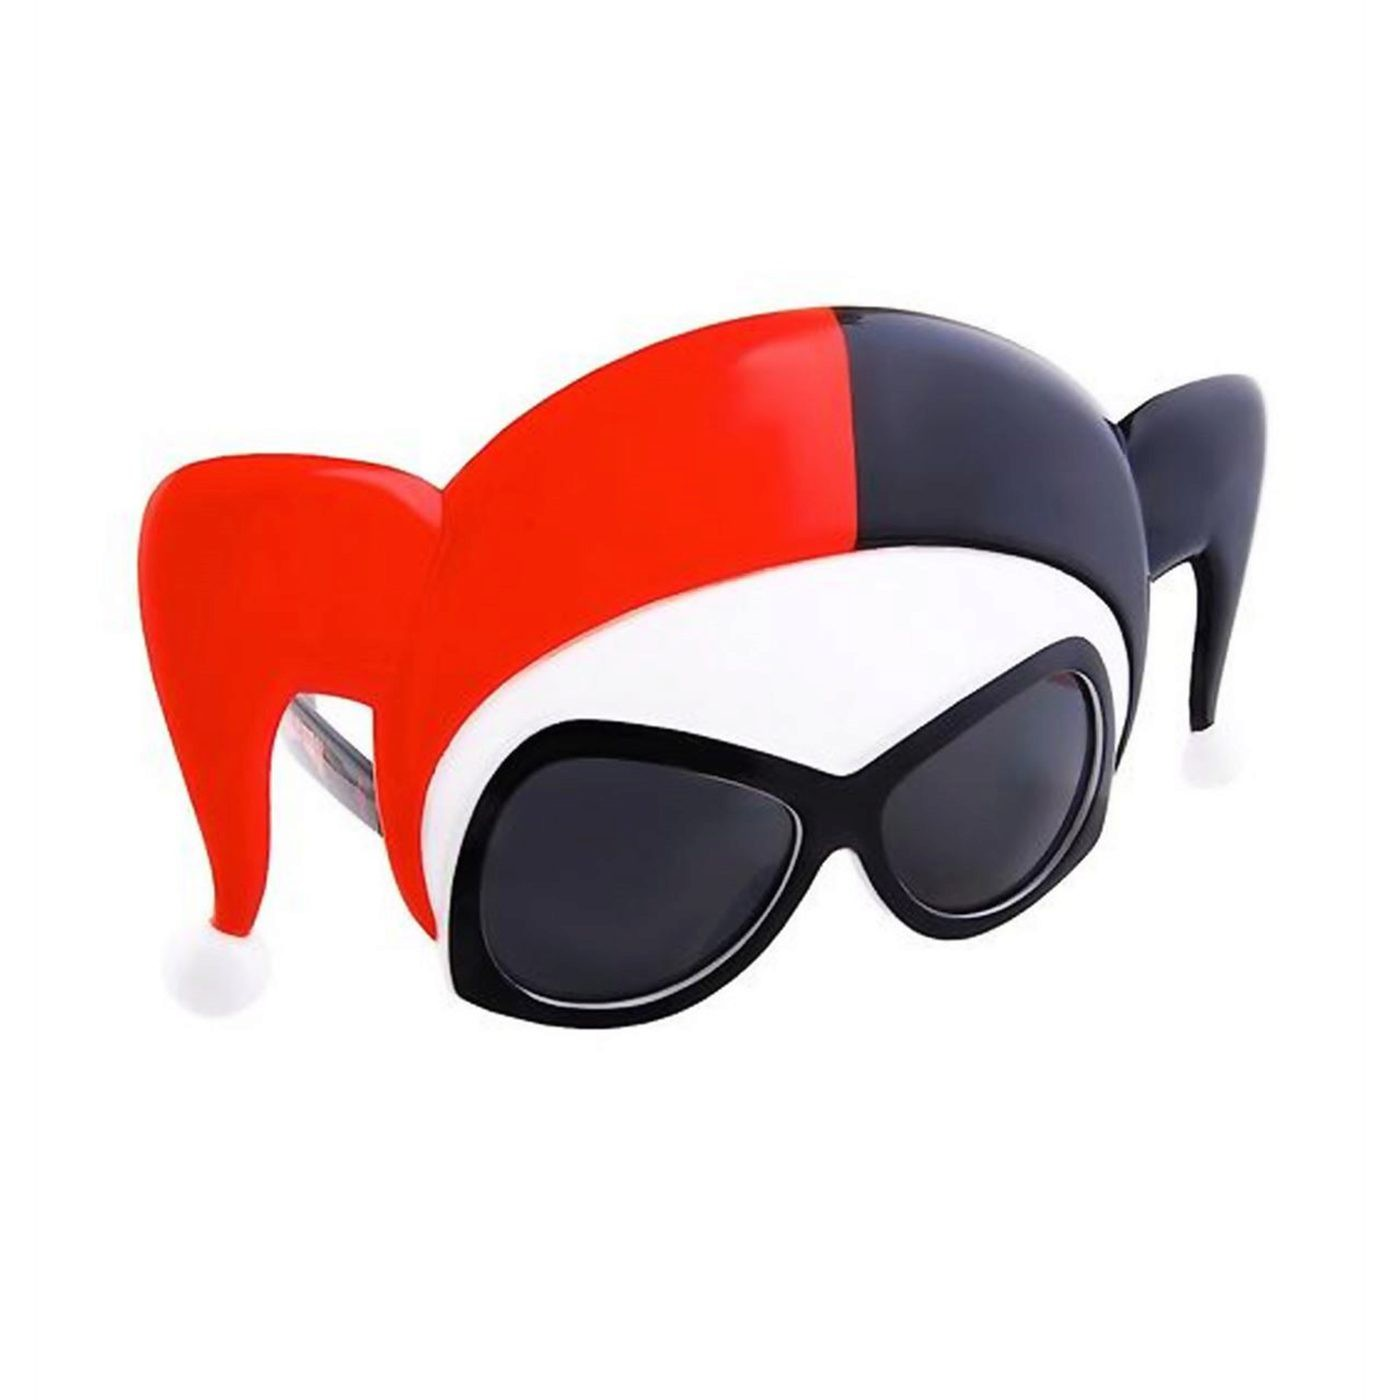 Harley Quinn Mask Costume Sunglasses